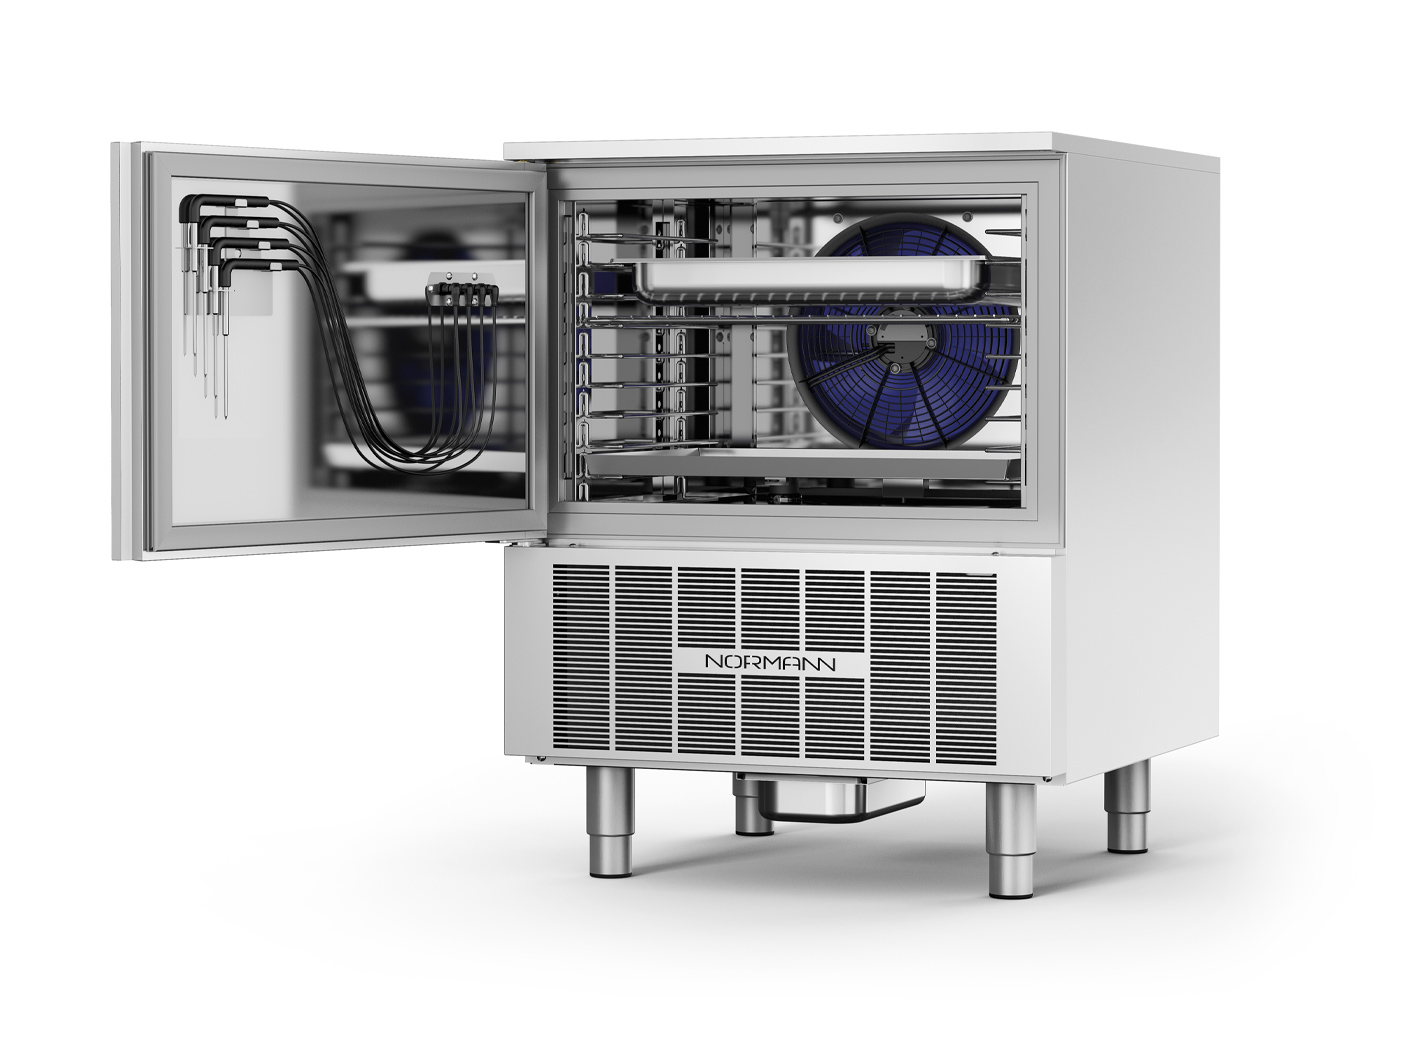 Normann Nortech GN trays 1/1 and EN 60x40 on a single, variable-capacity support.